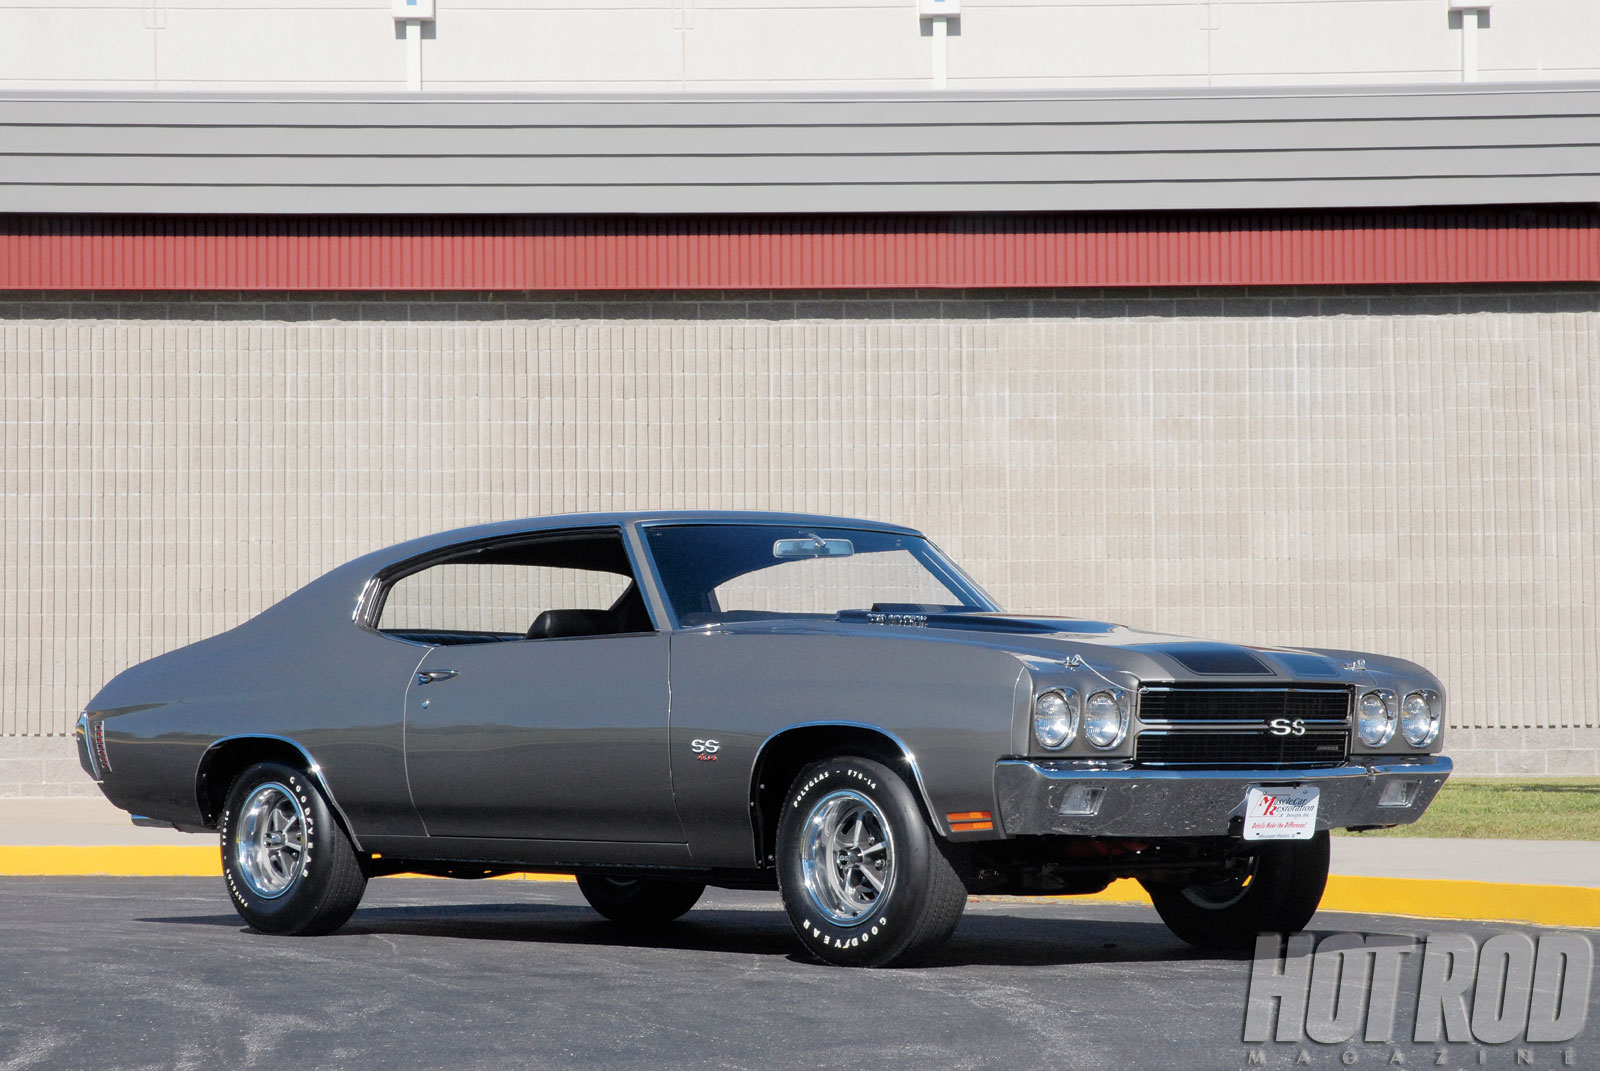 Cars Wallpaper For Google This 1970 Chevelle Ss454 From A Day Two Bruiser To A